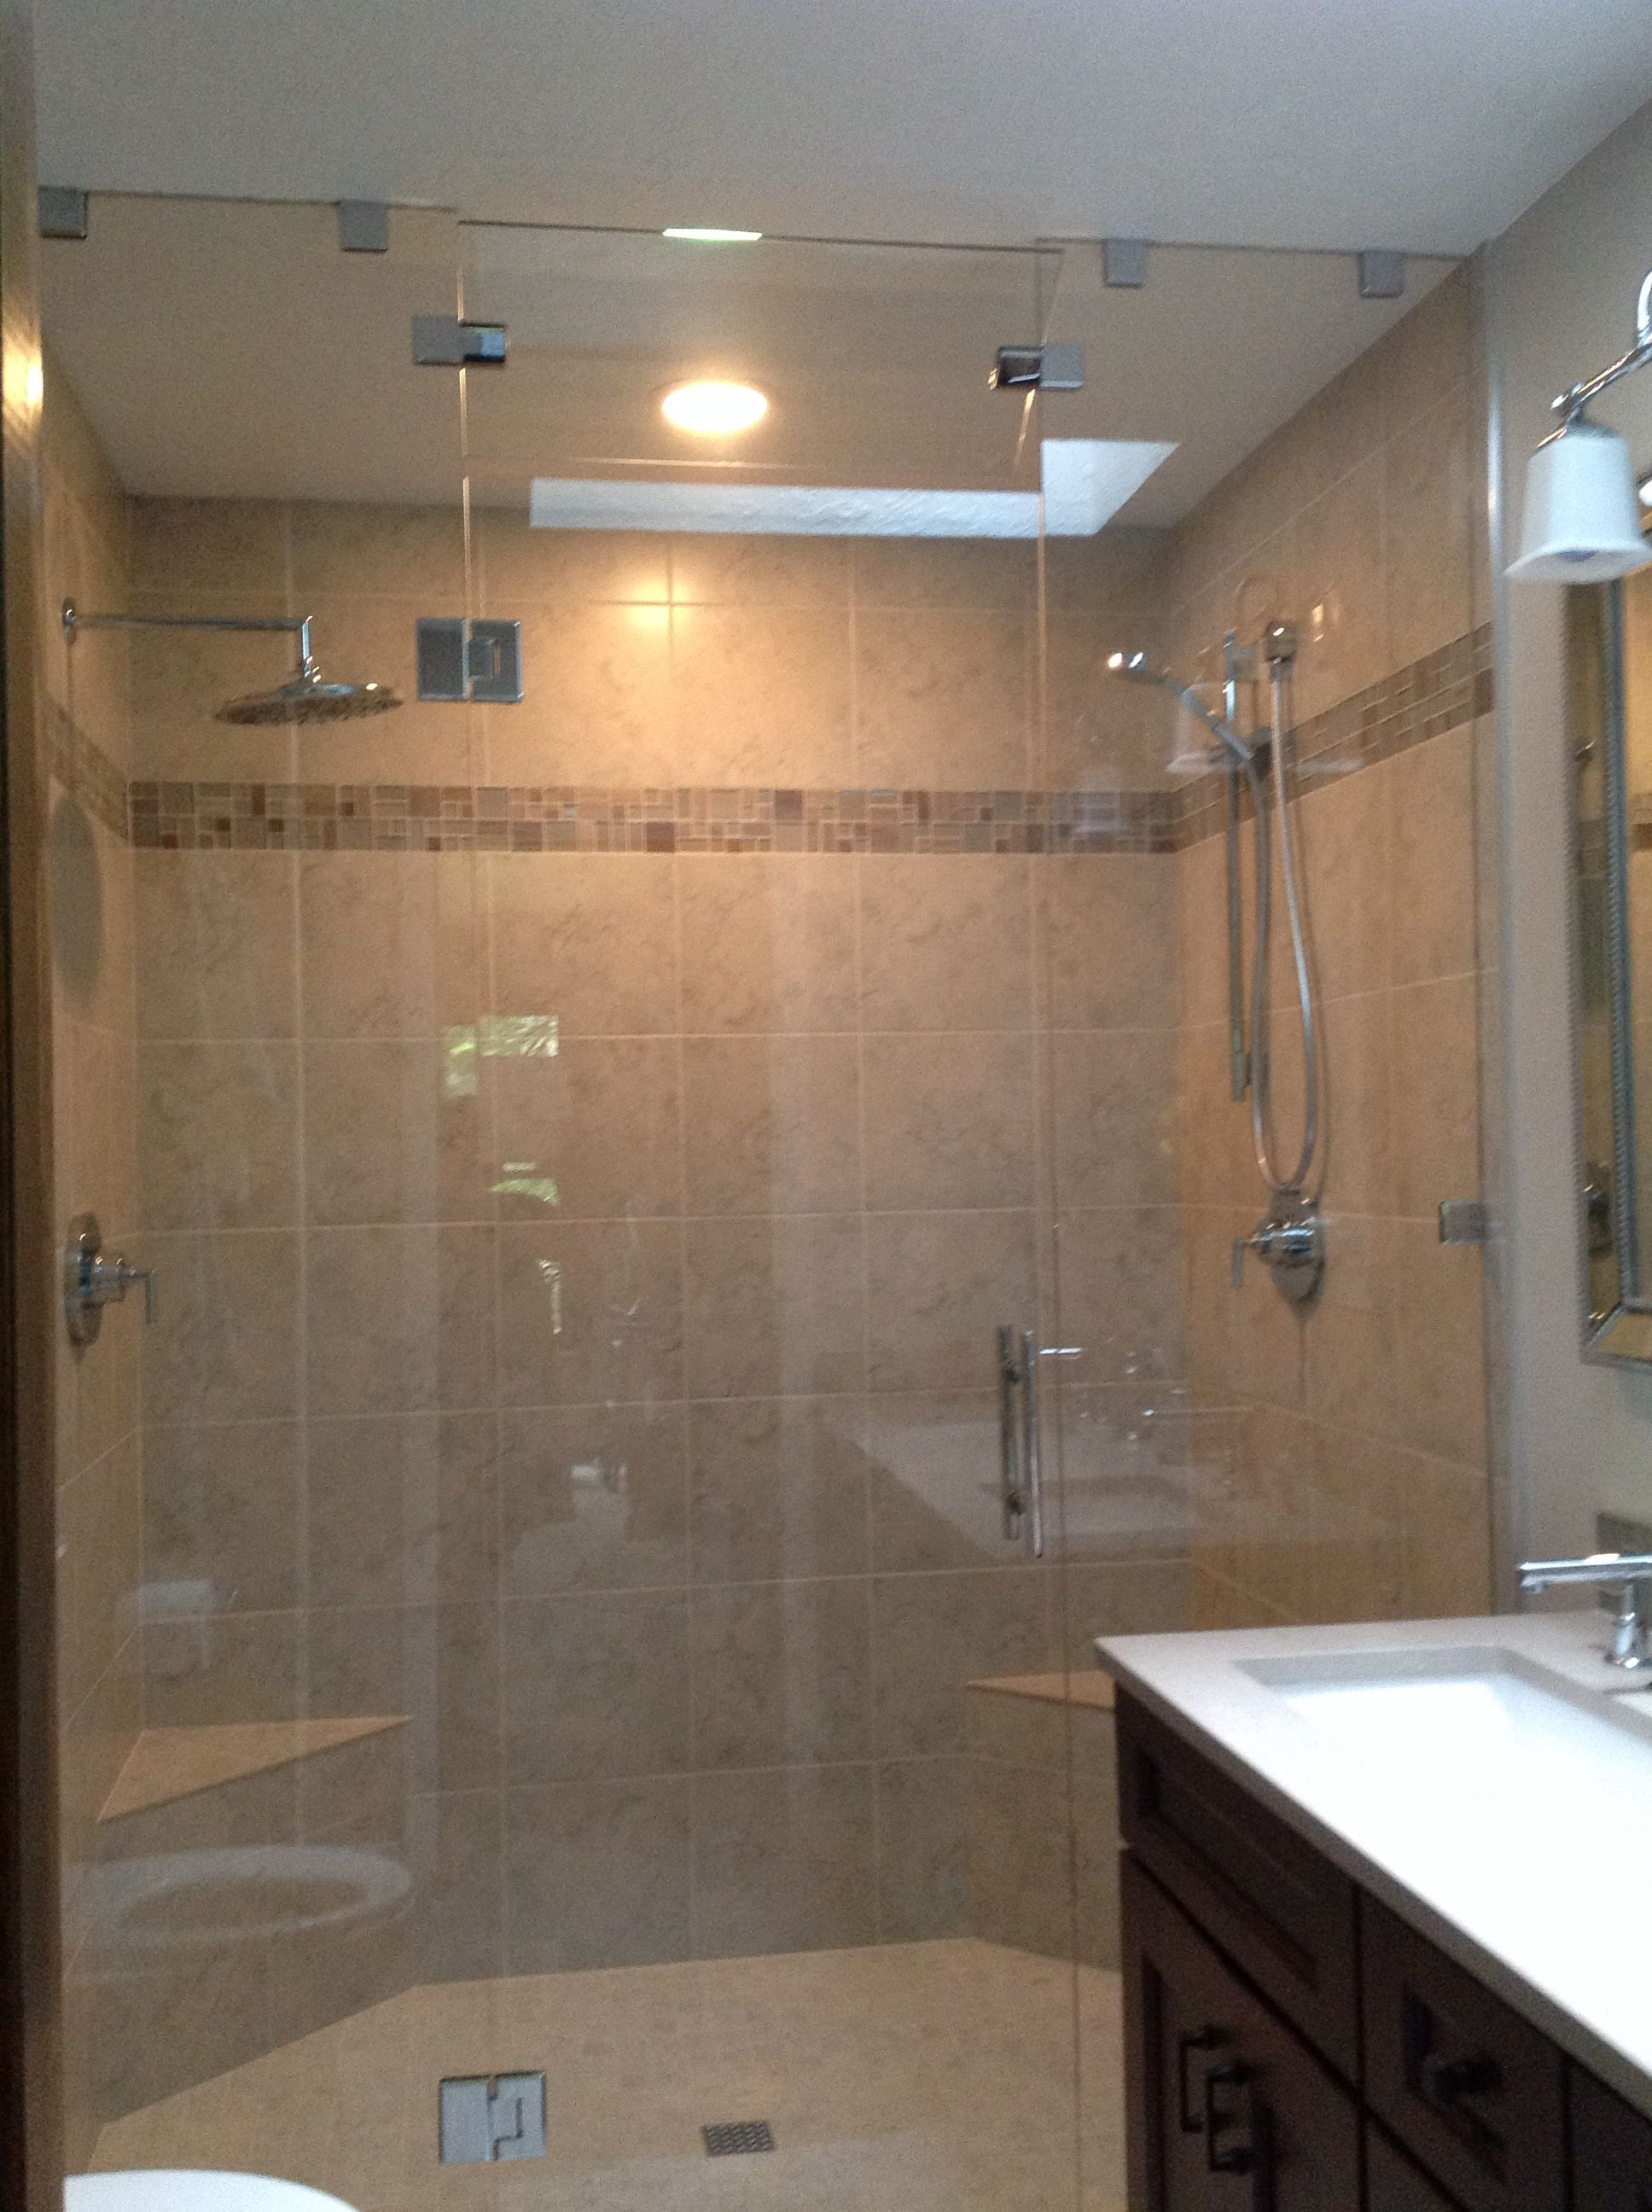 Glass shower wall | Bathrooms by Renee Shilling | Pinterest | Walls